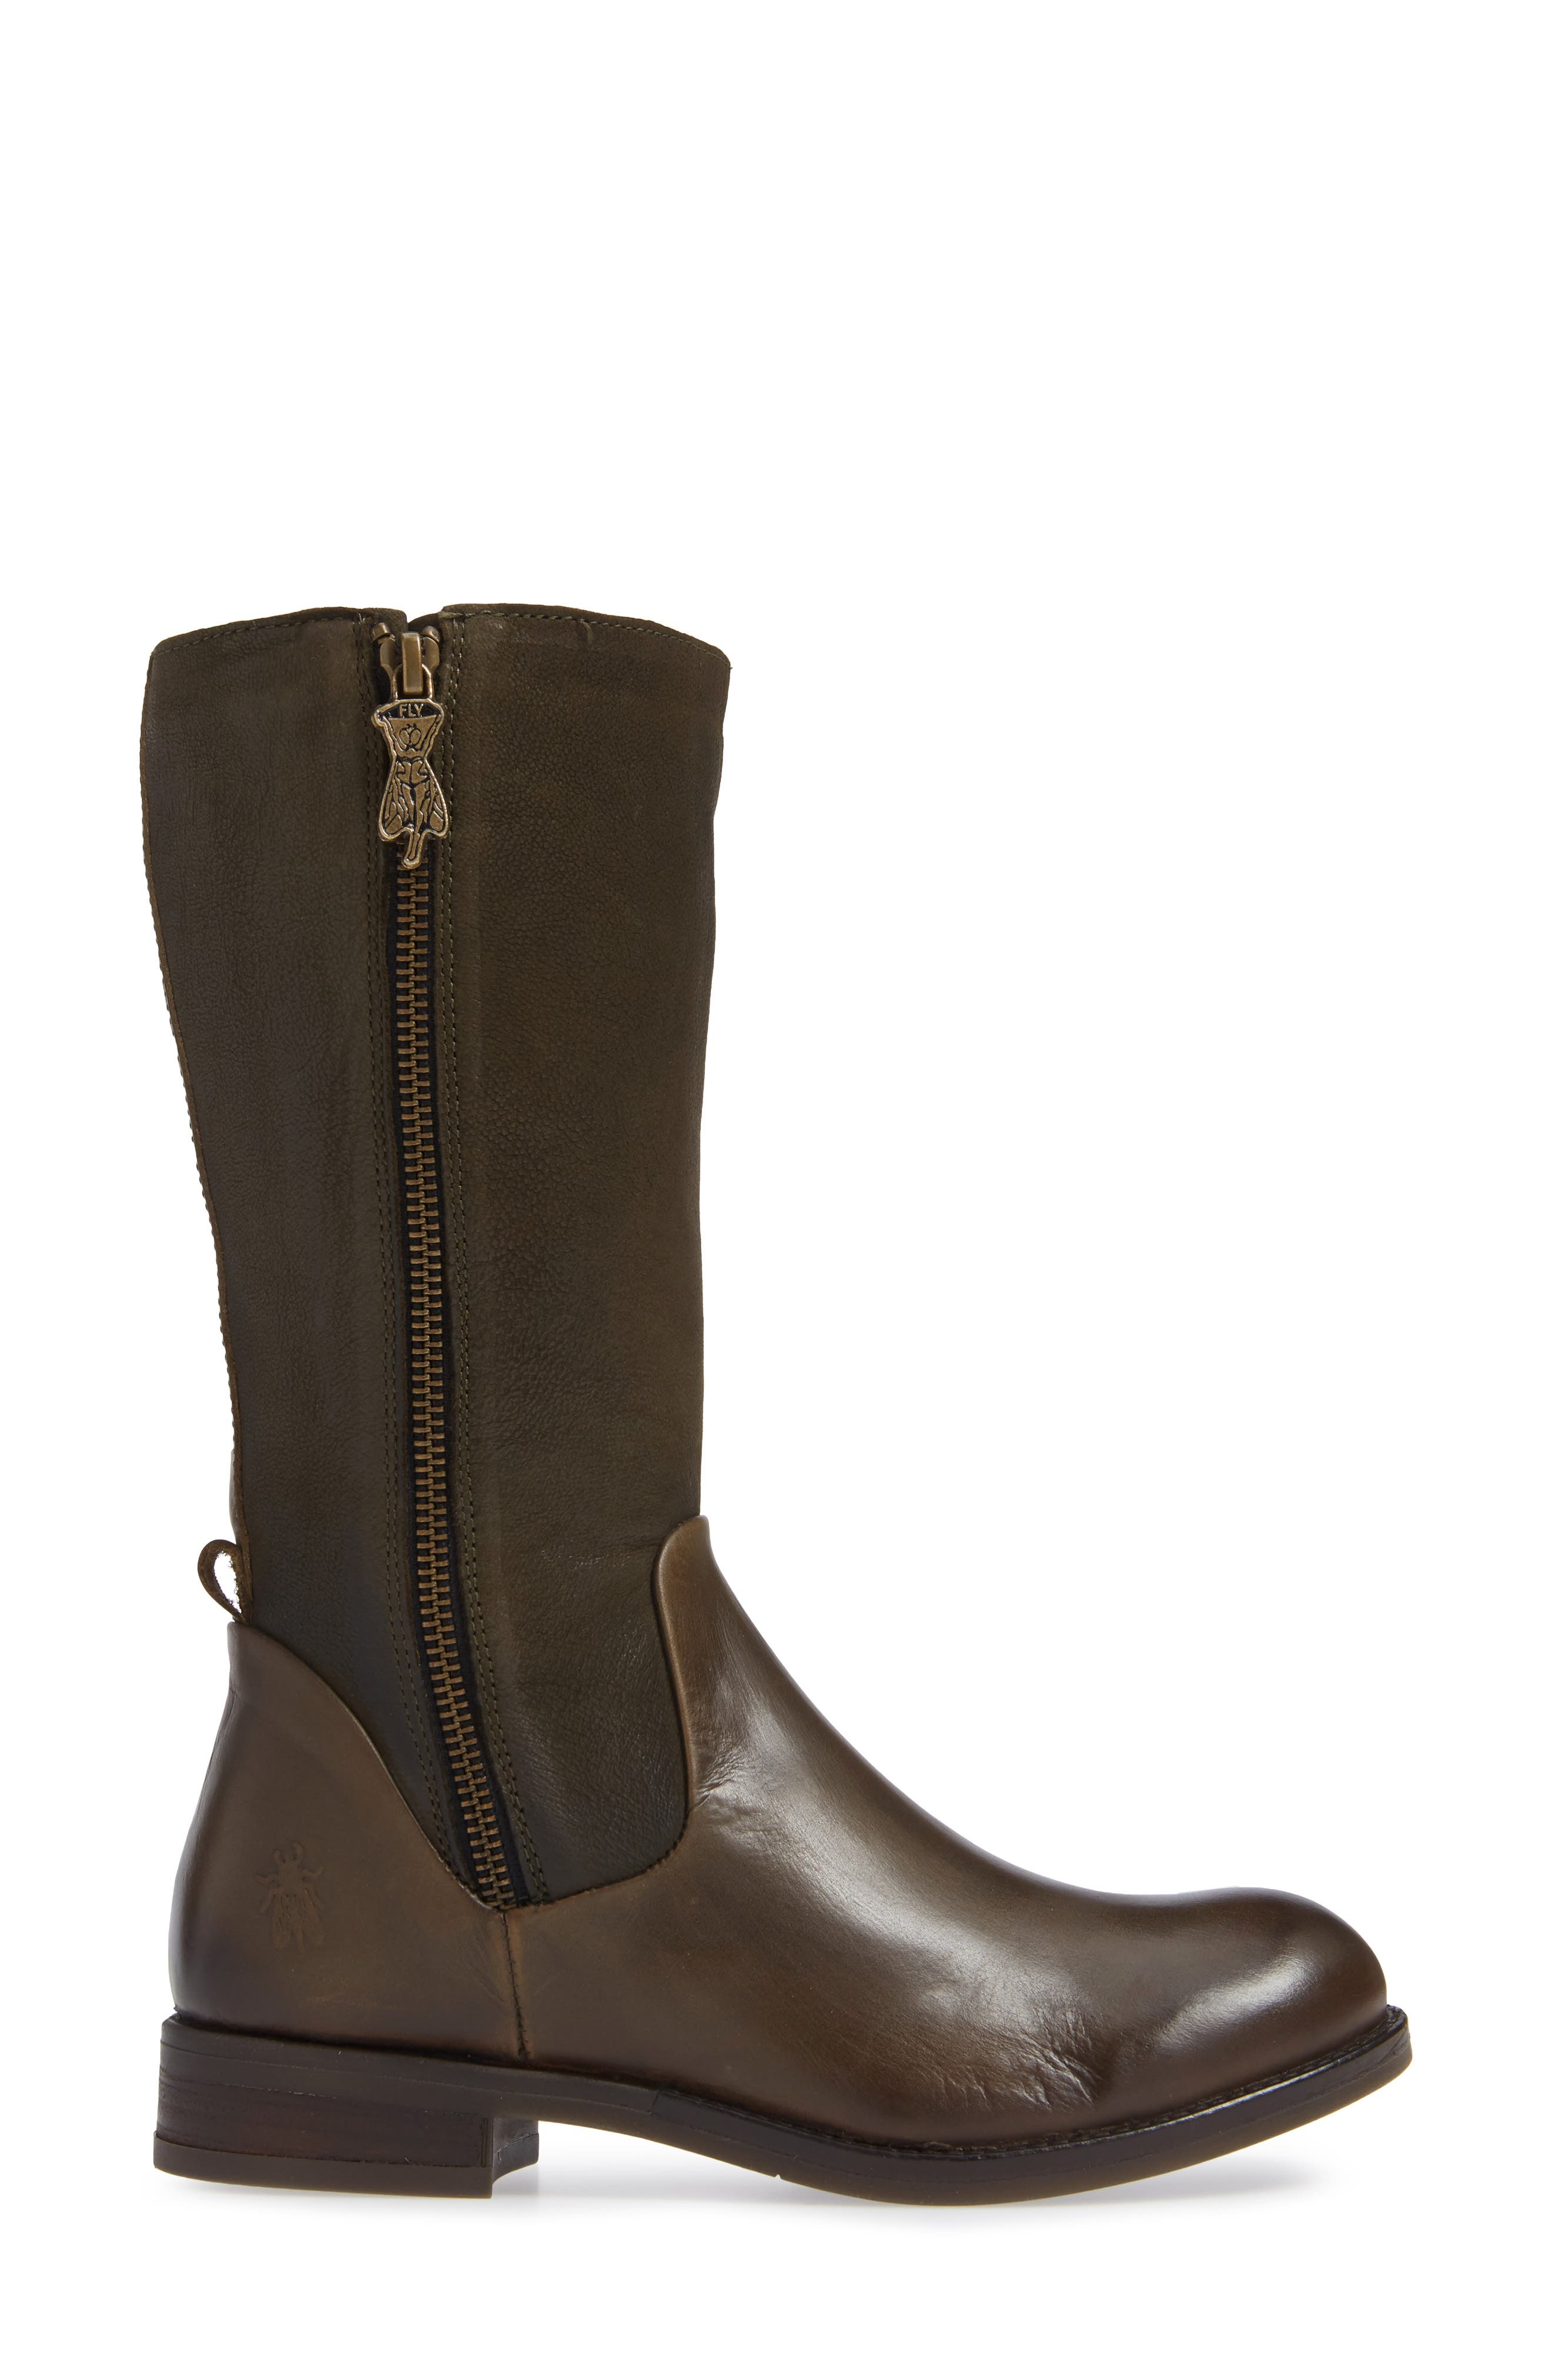 Aedi Boot,                             Alternate thumbnail 3, color,                             OLIVE/ SEAWEED LEATHER